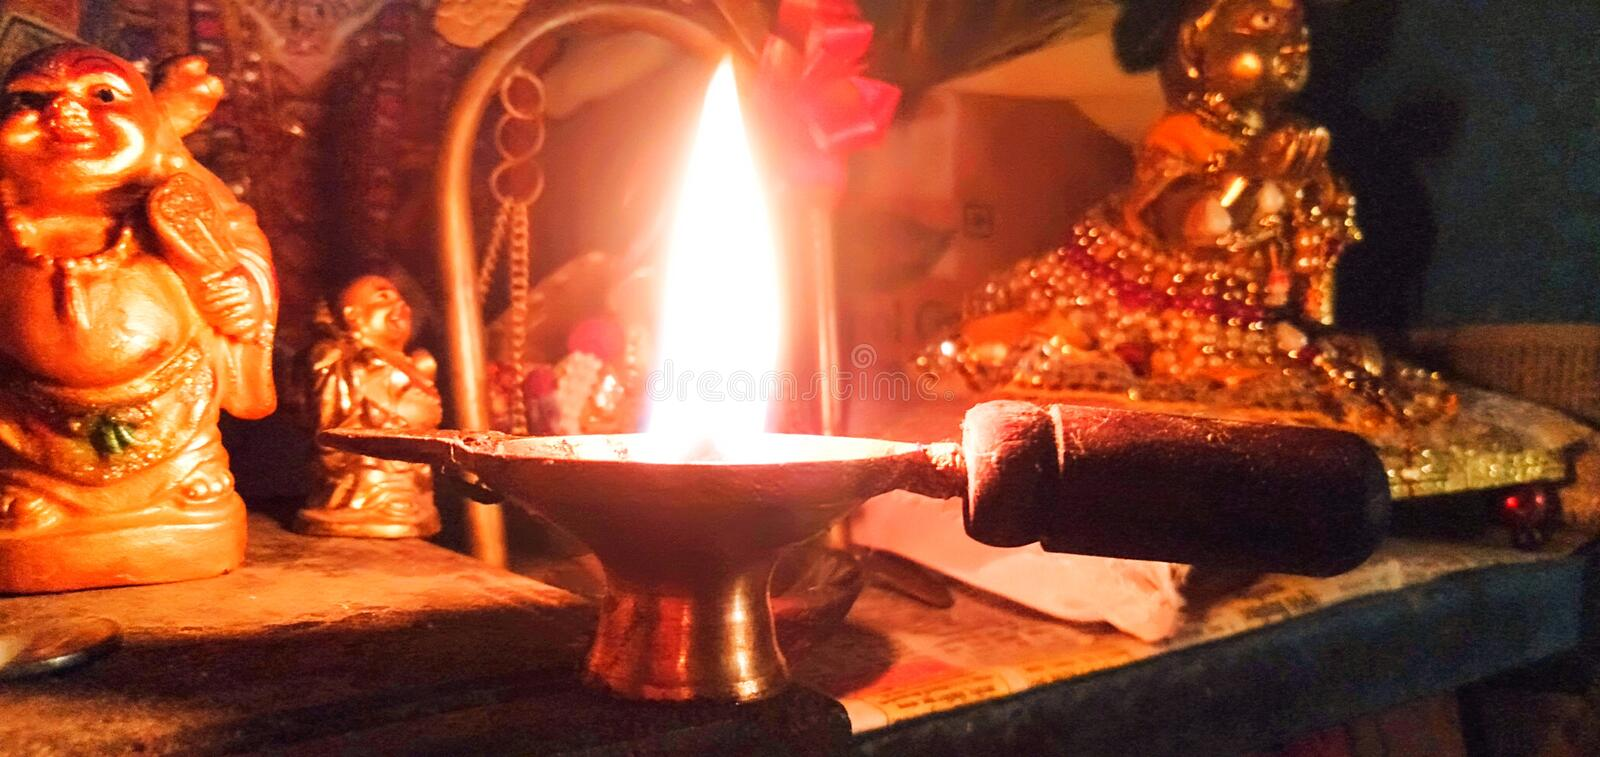 Evening light in the tample. Photo of the lamp that burns in the tample during the evening stock photography